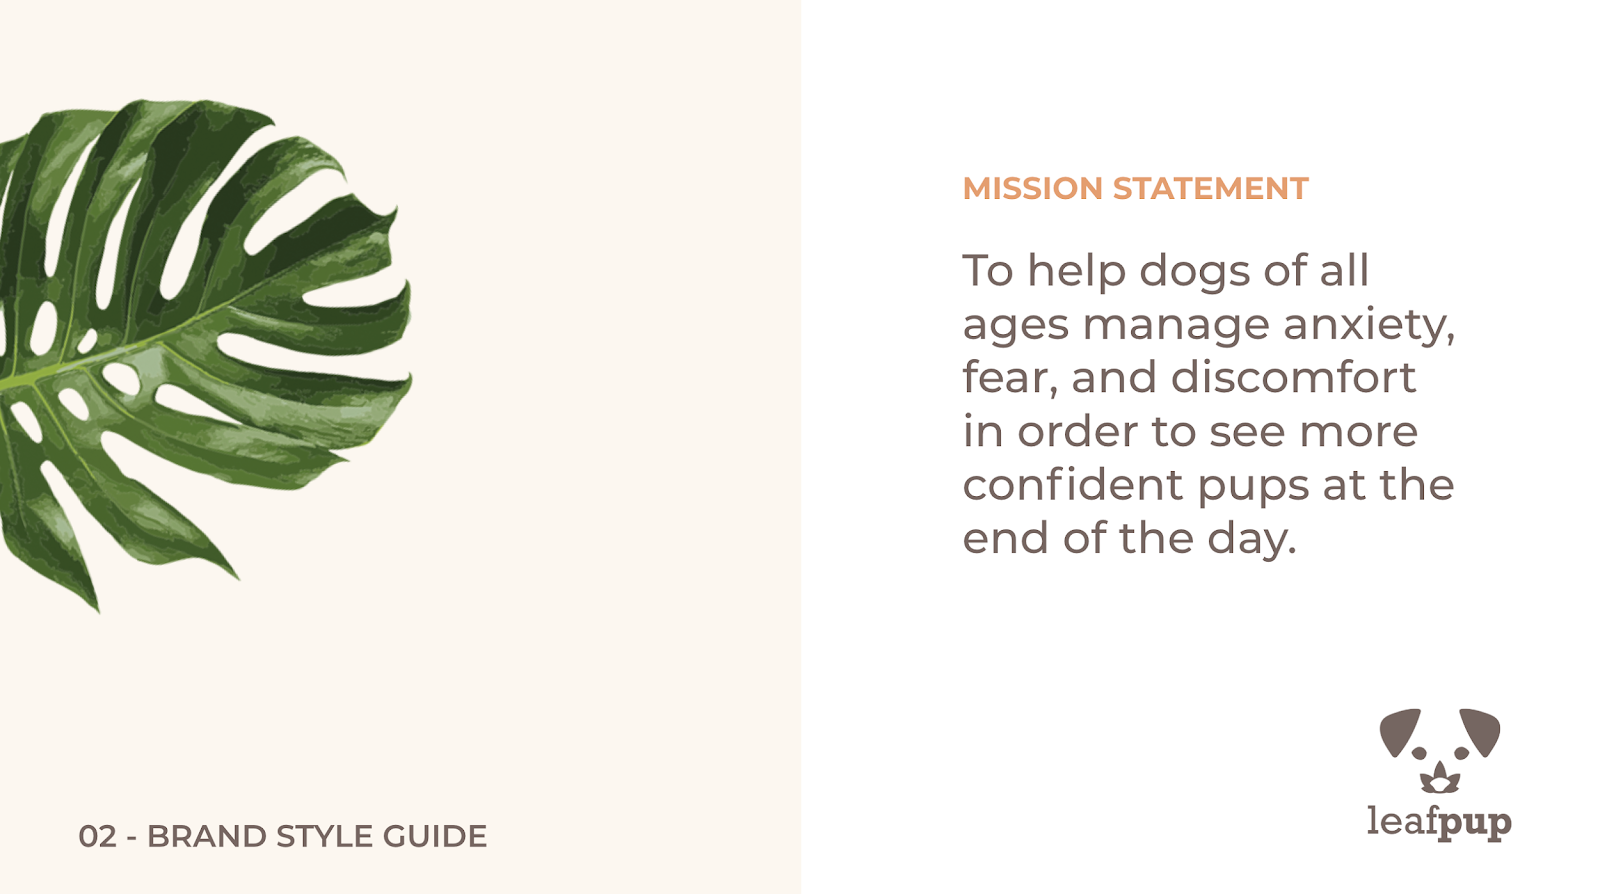 Leafpup's Mission Statement